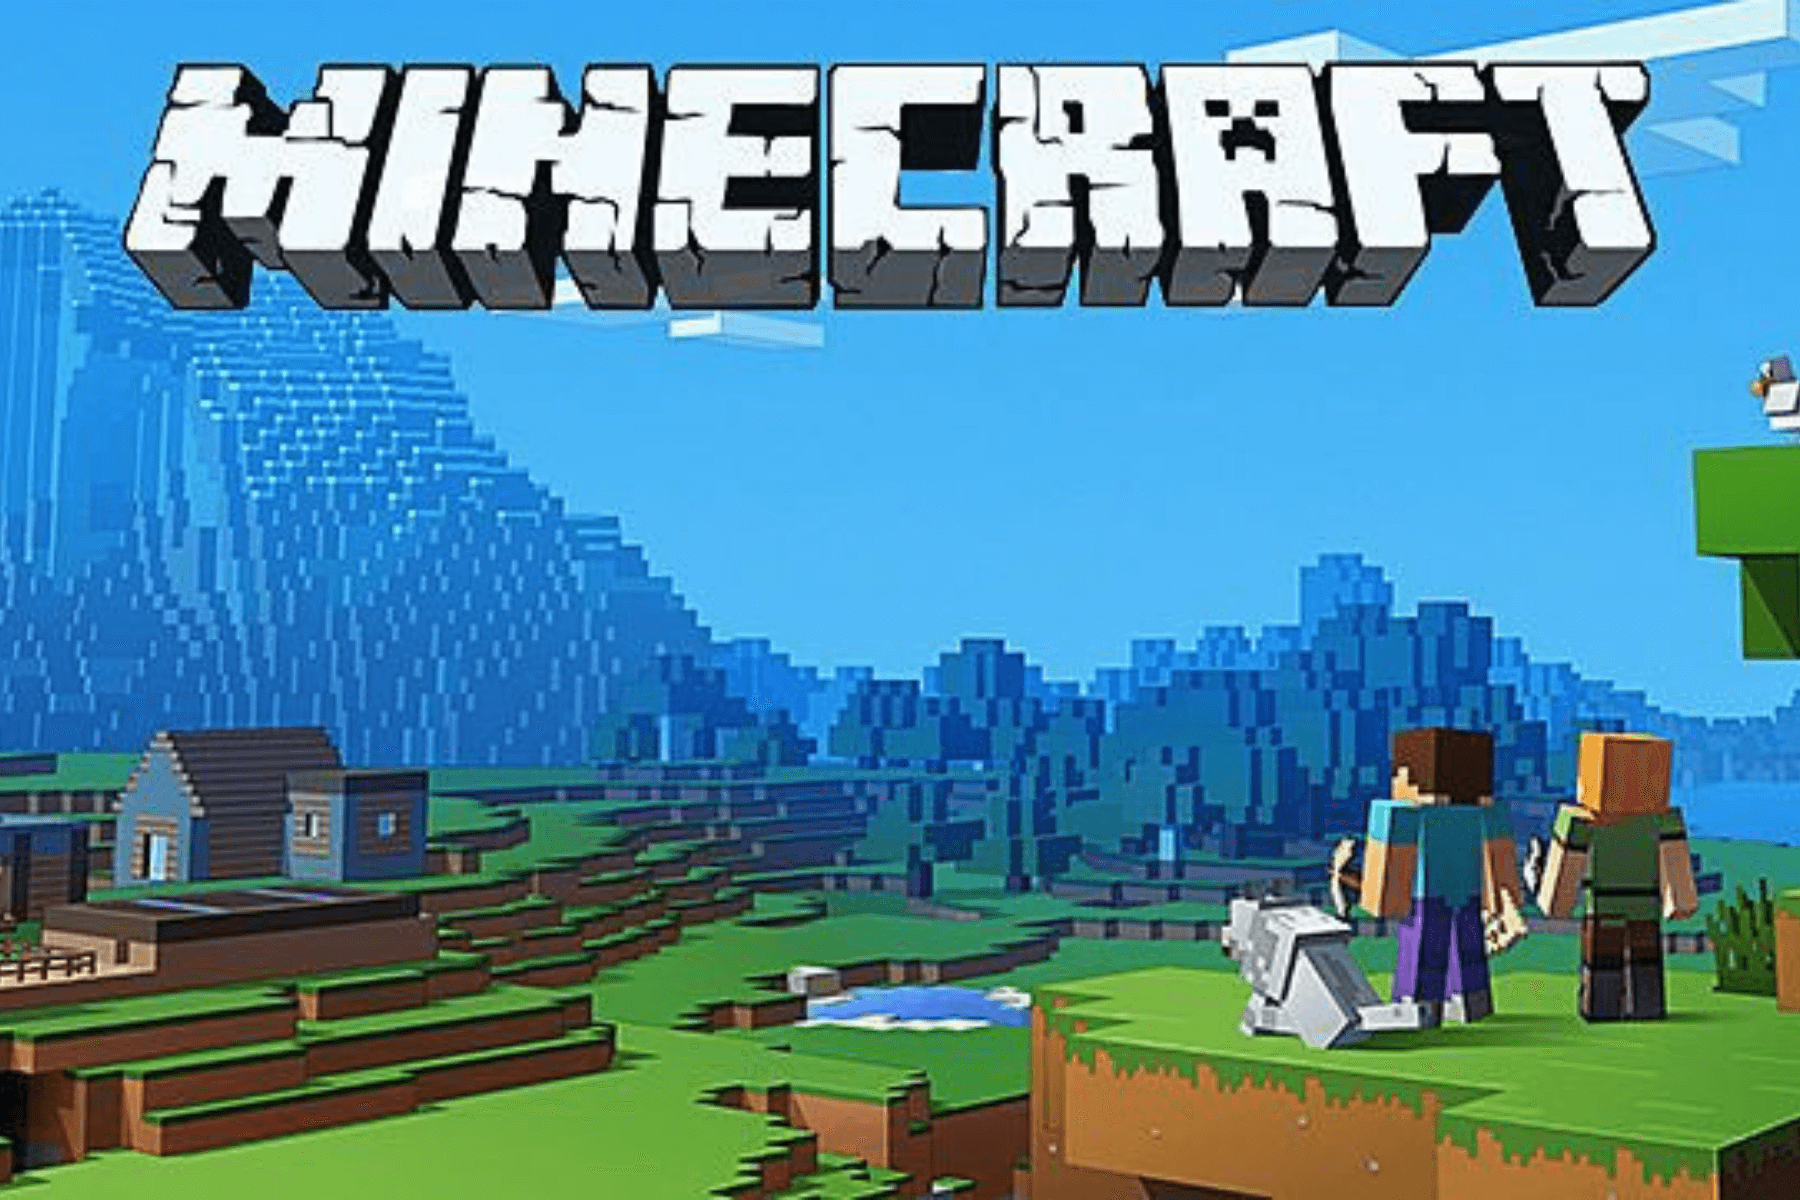 Download Pocket Edition Of Minecraft Free And Easy Build Your Own Life The Way You Have Always Envision Minecraft Wallpaper Minecraft Pocket Edition Minecraft